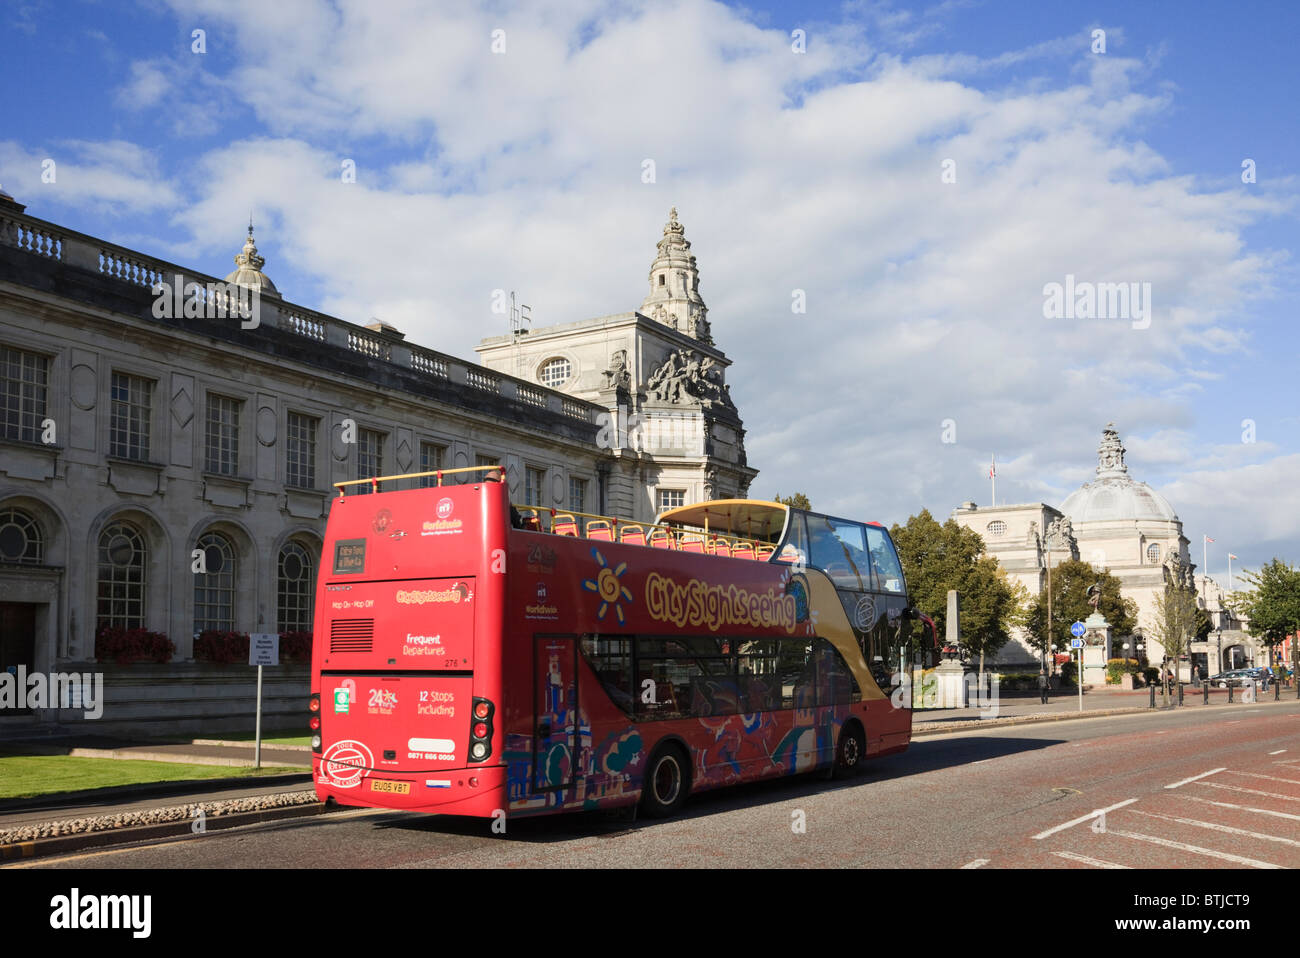 Cathays Park, Cardiff, Glamorgan, South Wales, UK. Hop on Hop off open top double decker tourist bus passing the - Stock Image